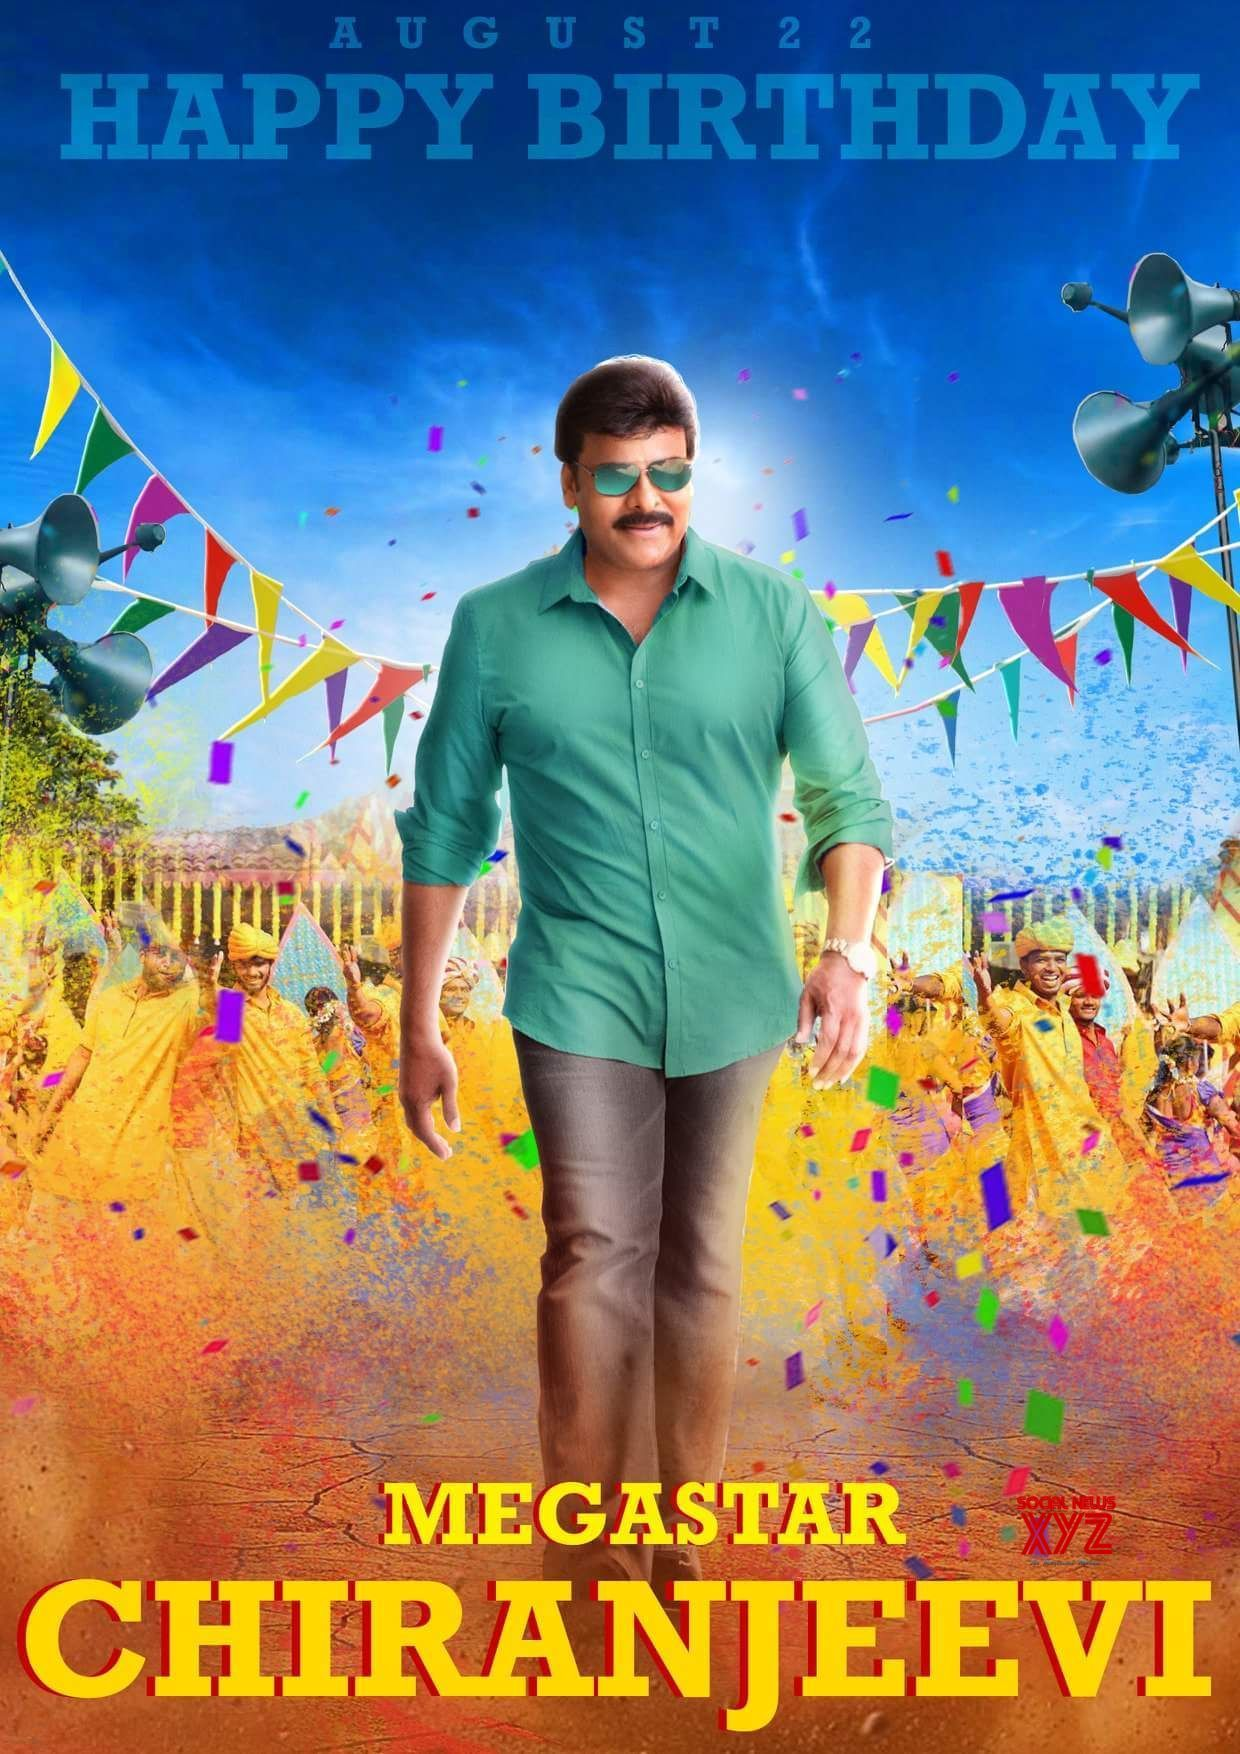 Mega Star Chiranjeevi Birthday Wishes Posters